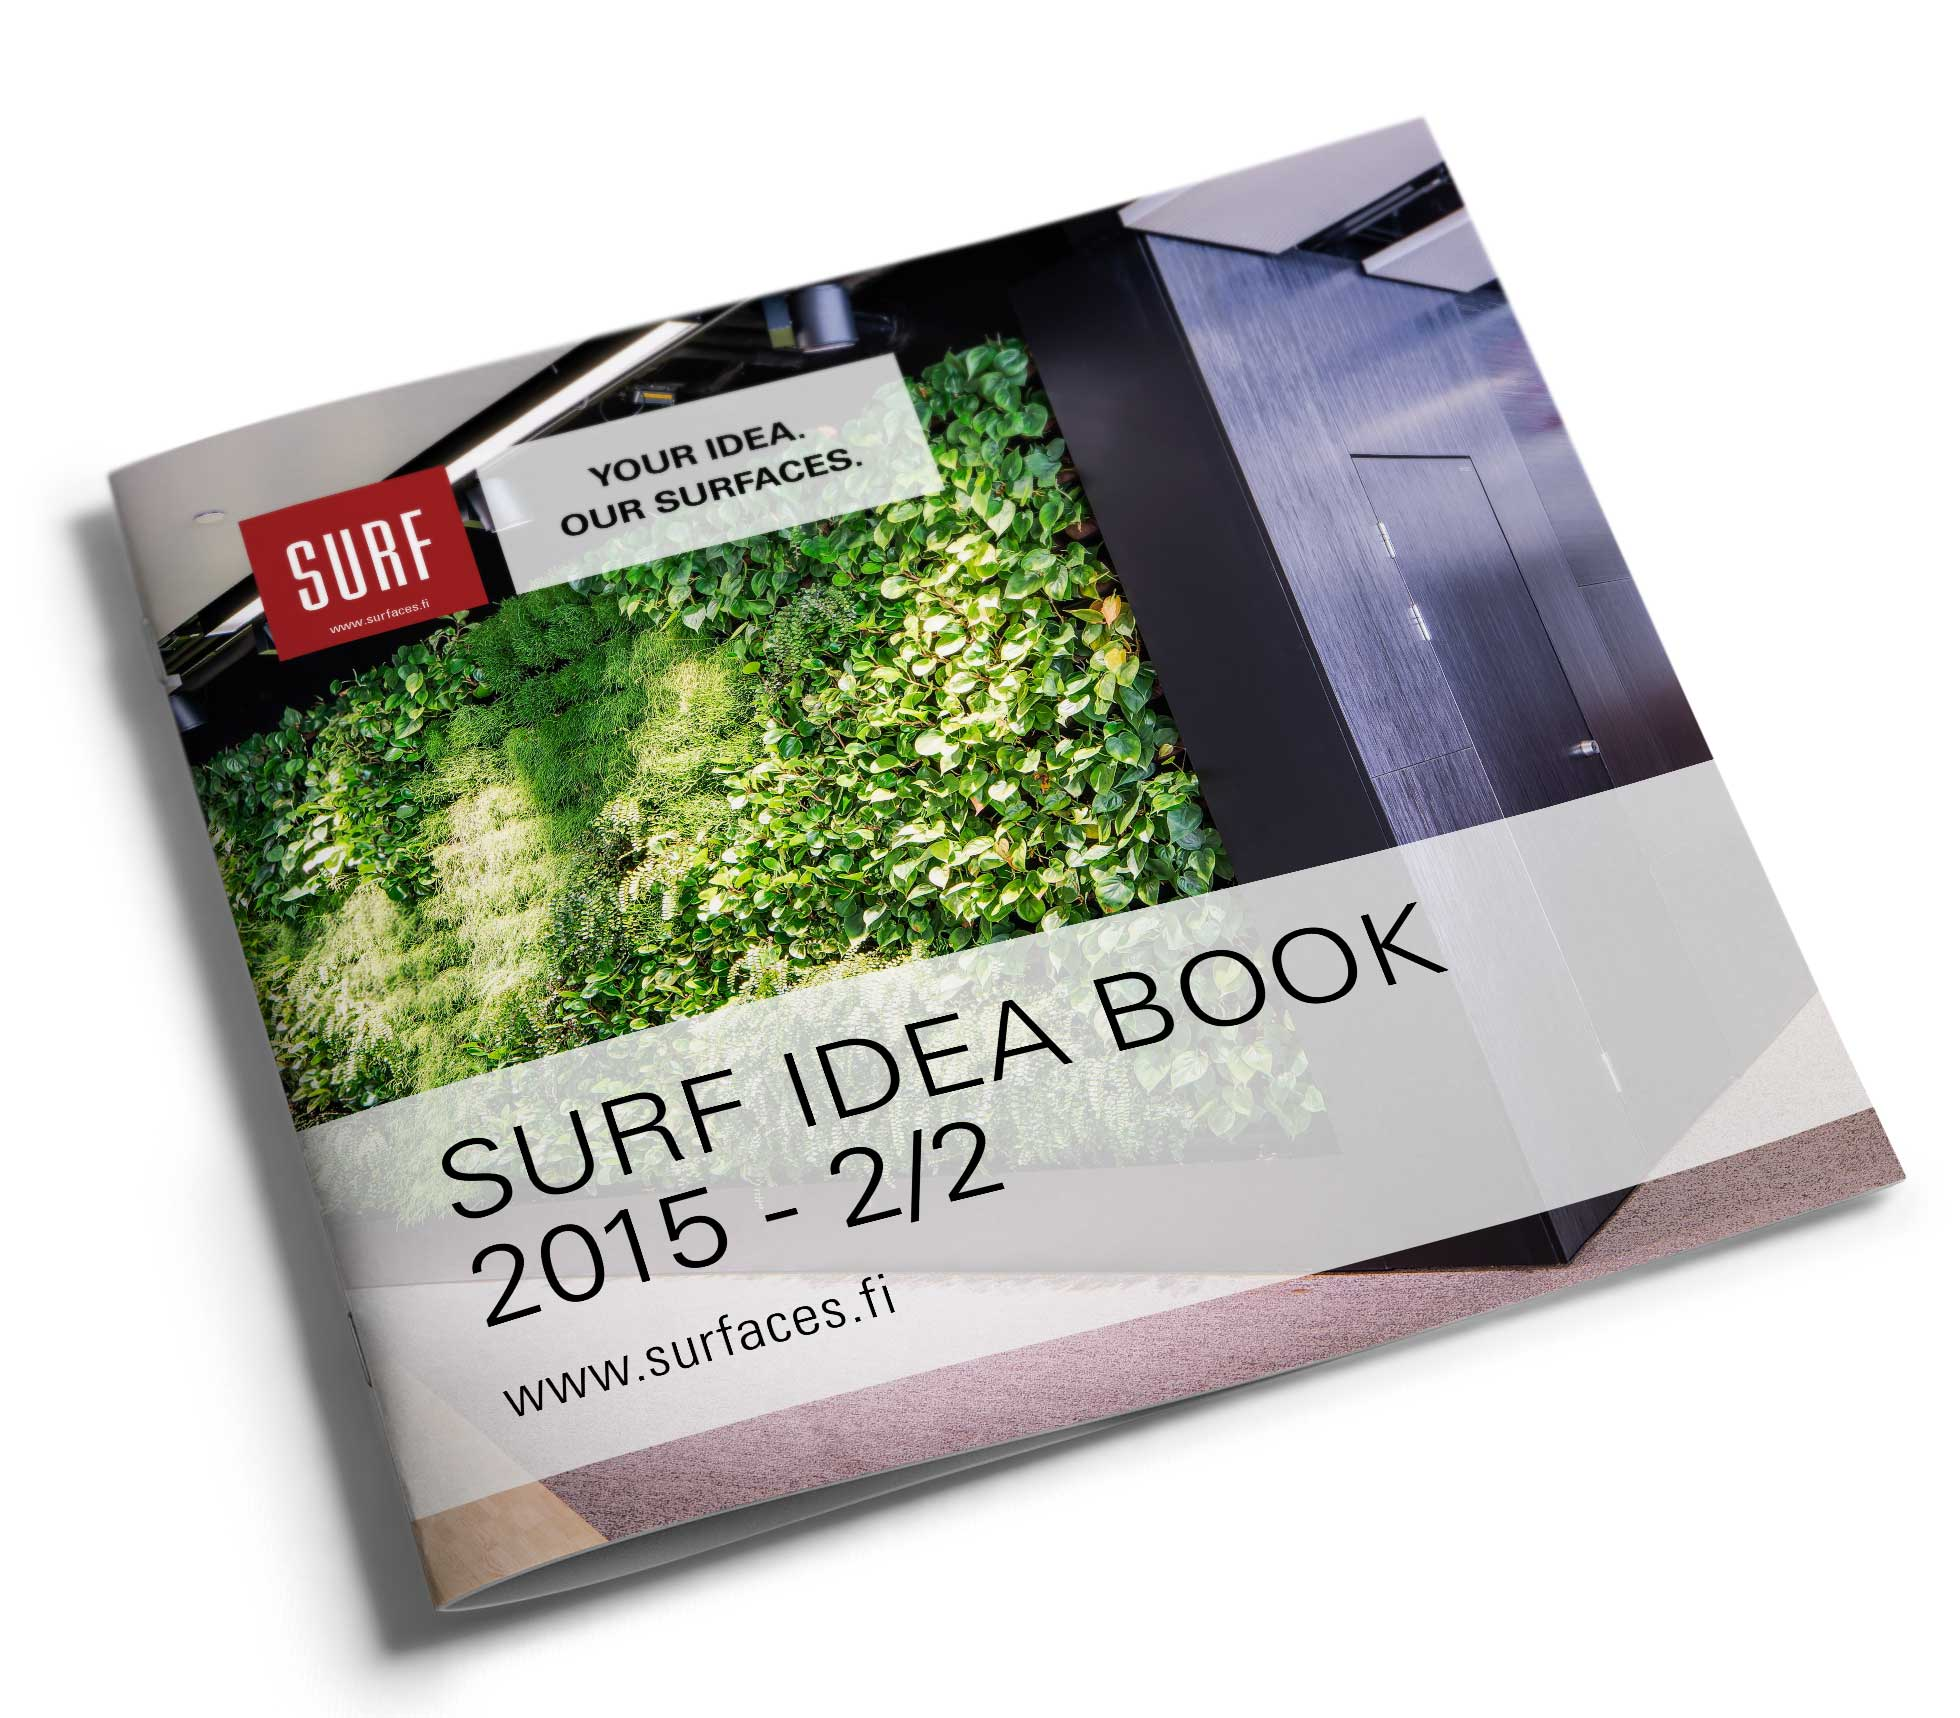 SURF Idea Book 2015 – 2/2